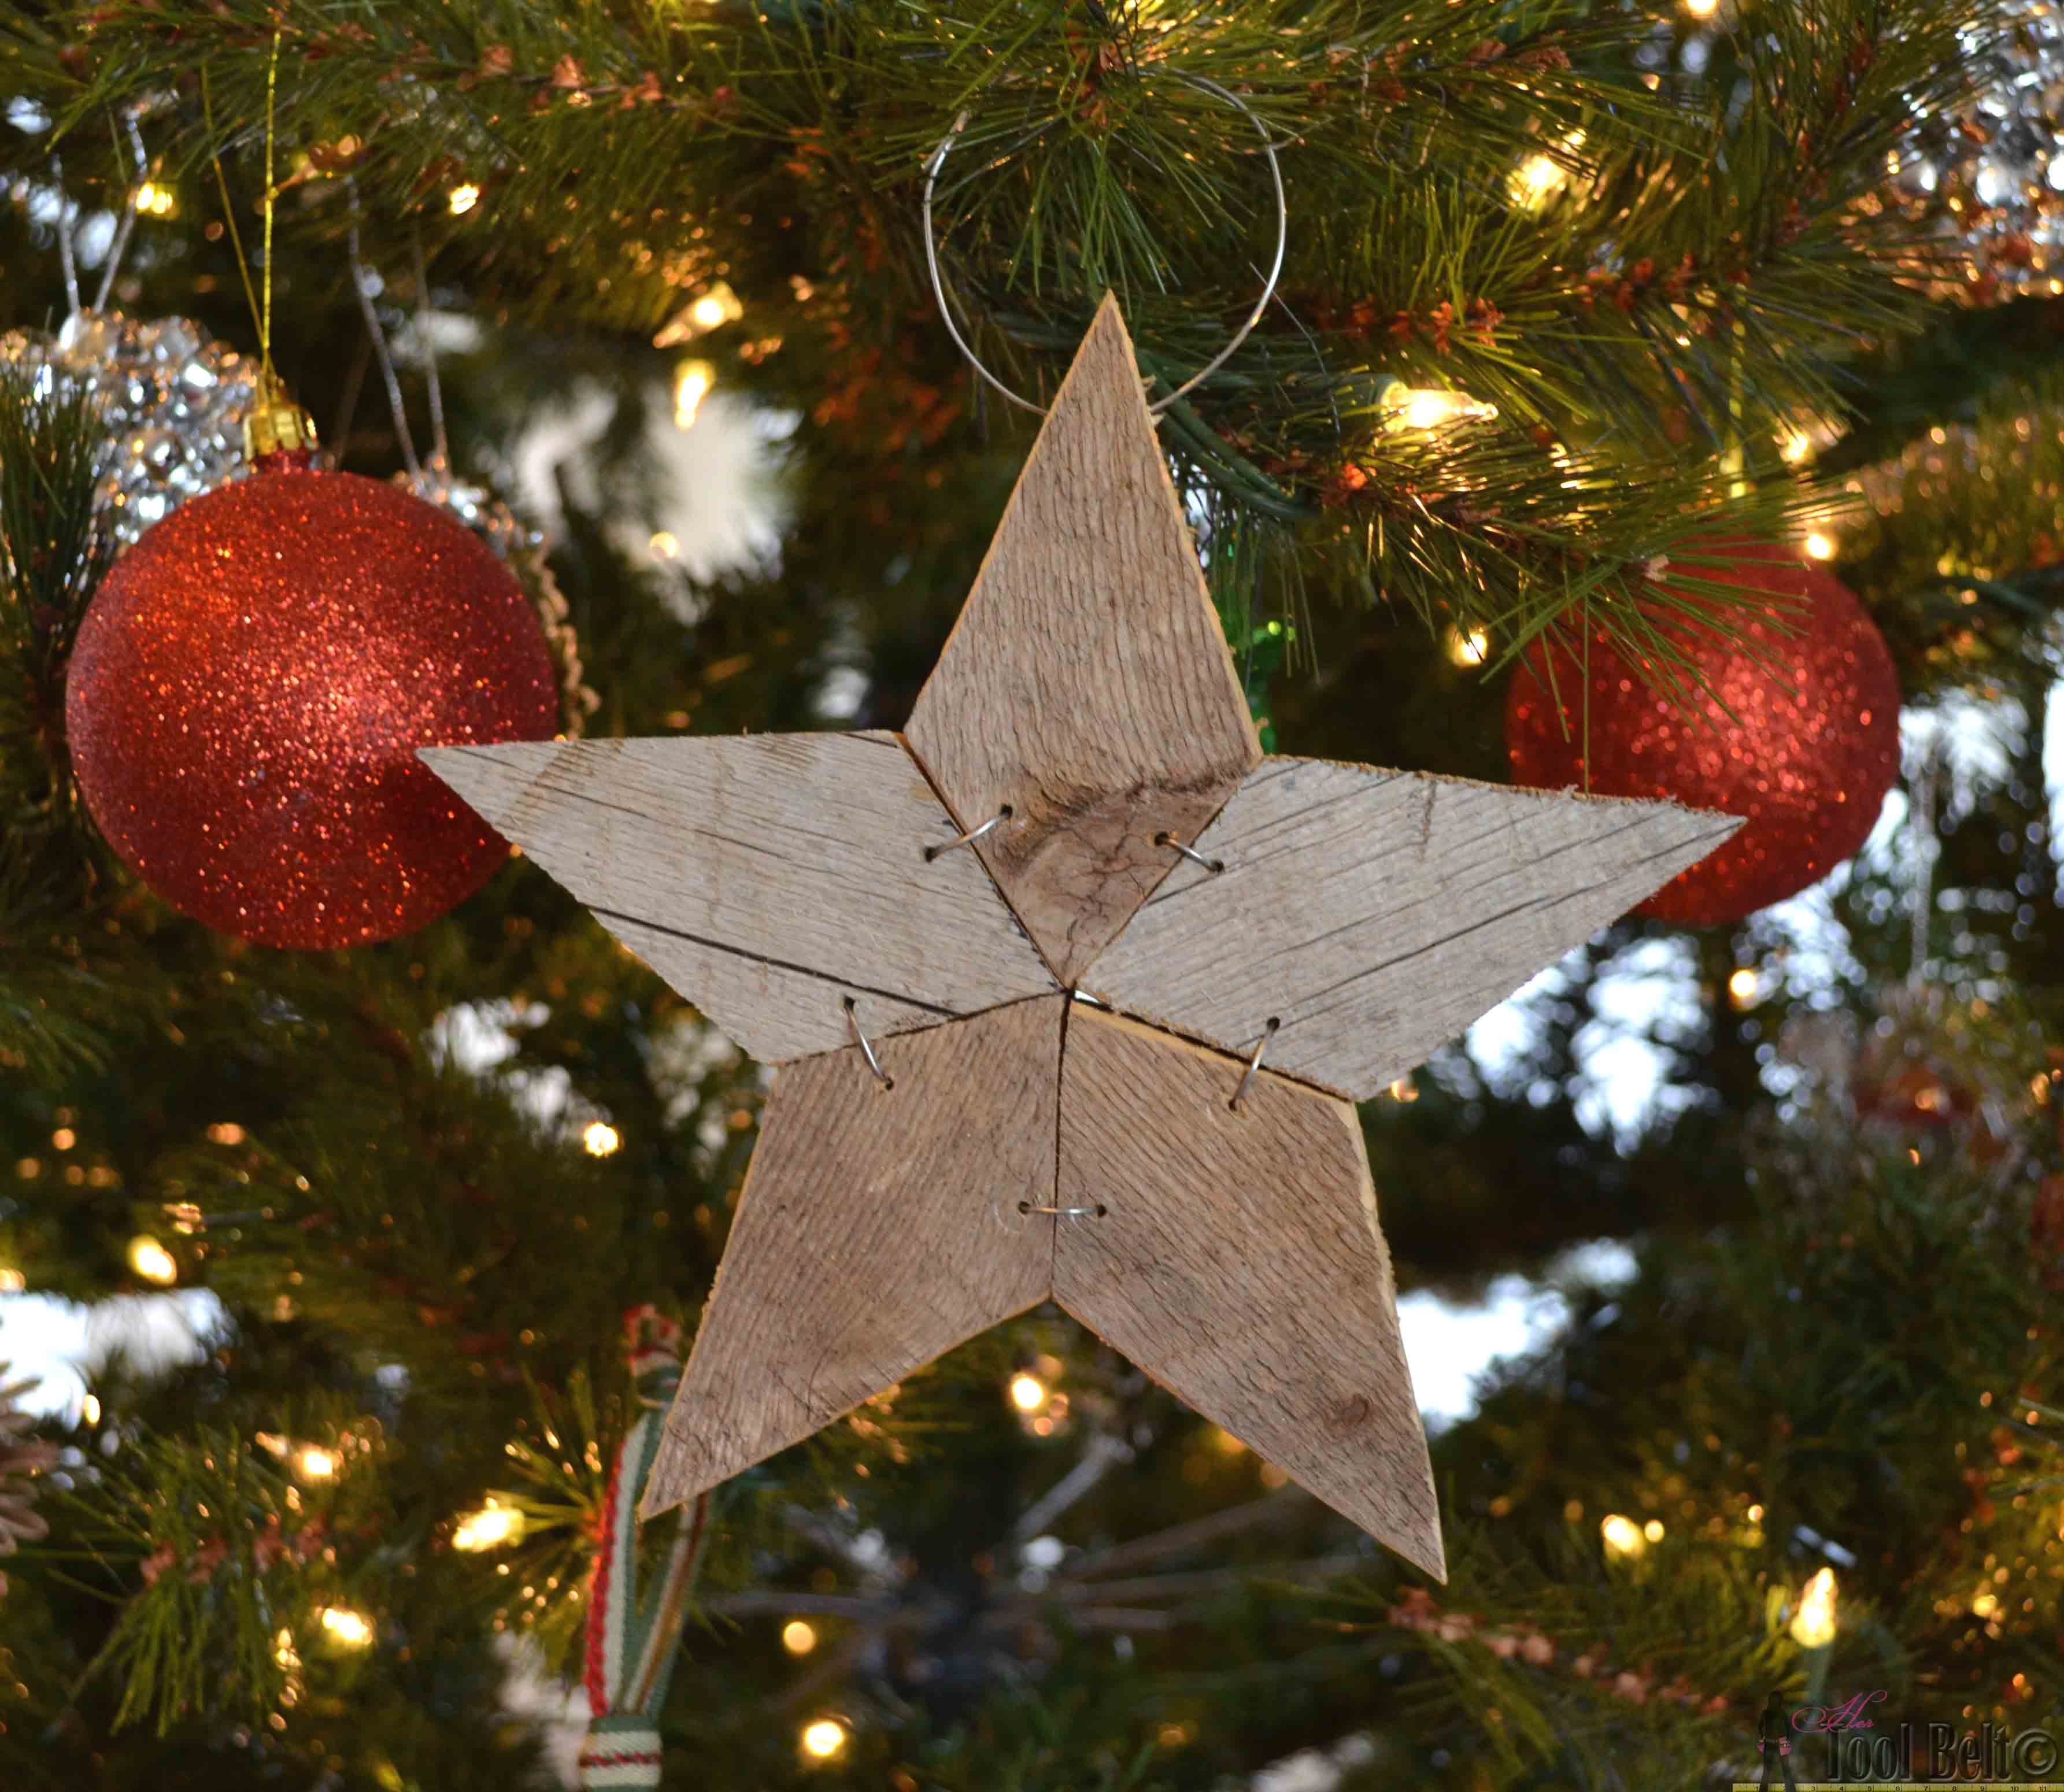 Rustic stars for crafts - Easily Add Natural Elements Into Your Christmas Decor With These Simple Patchwork Rustic Stars Free